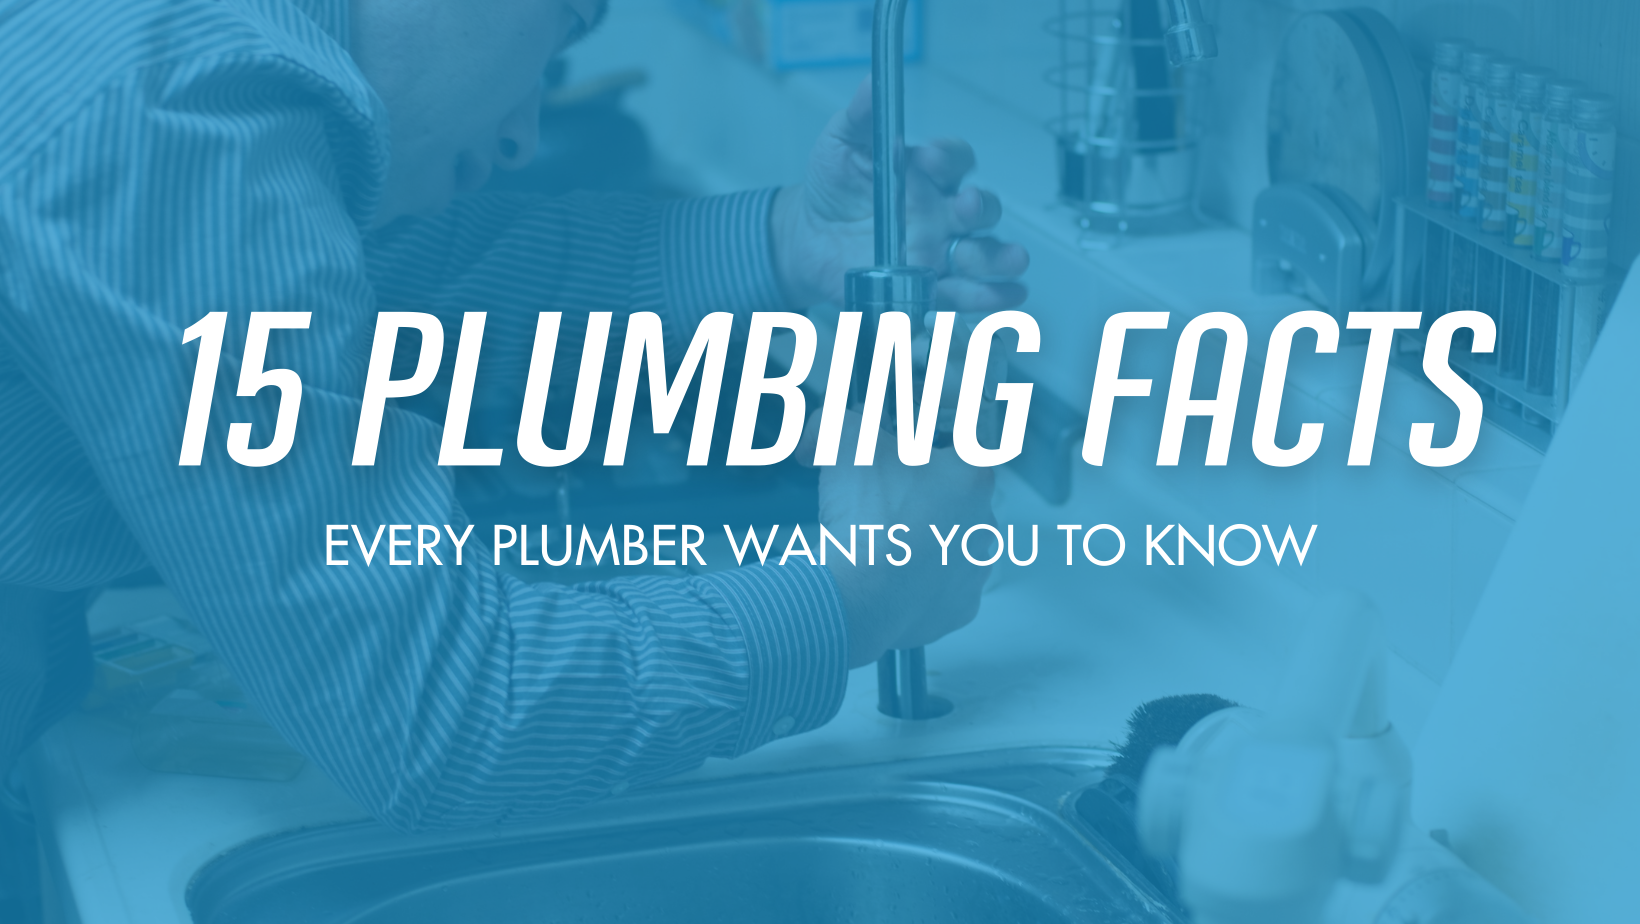 Ease Plumbing Gives 15 Plumbing Facts That All Homeowners Should Know